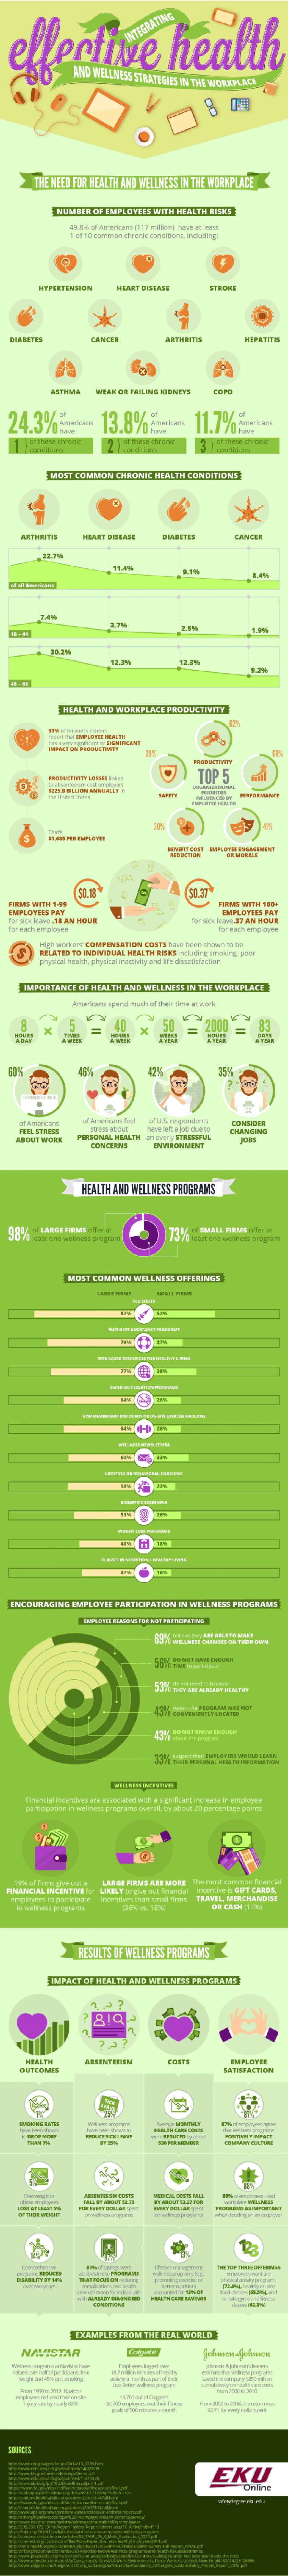 Health and Wellness at Work, infographic